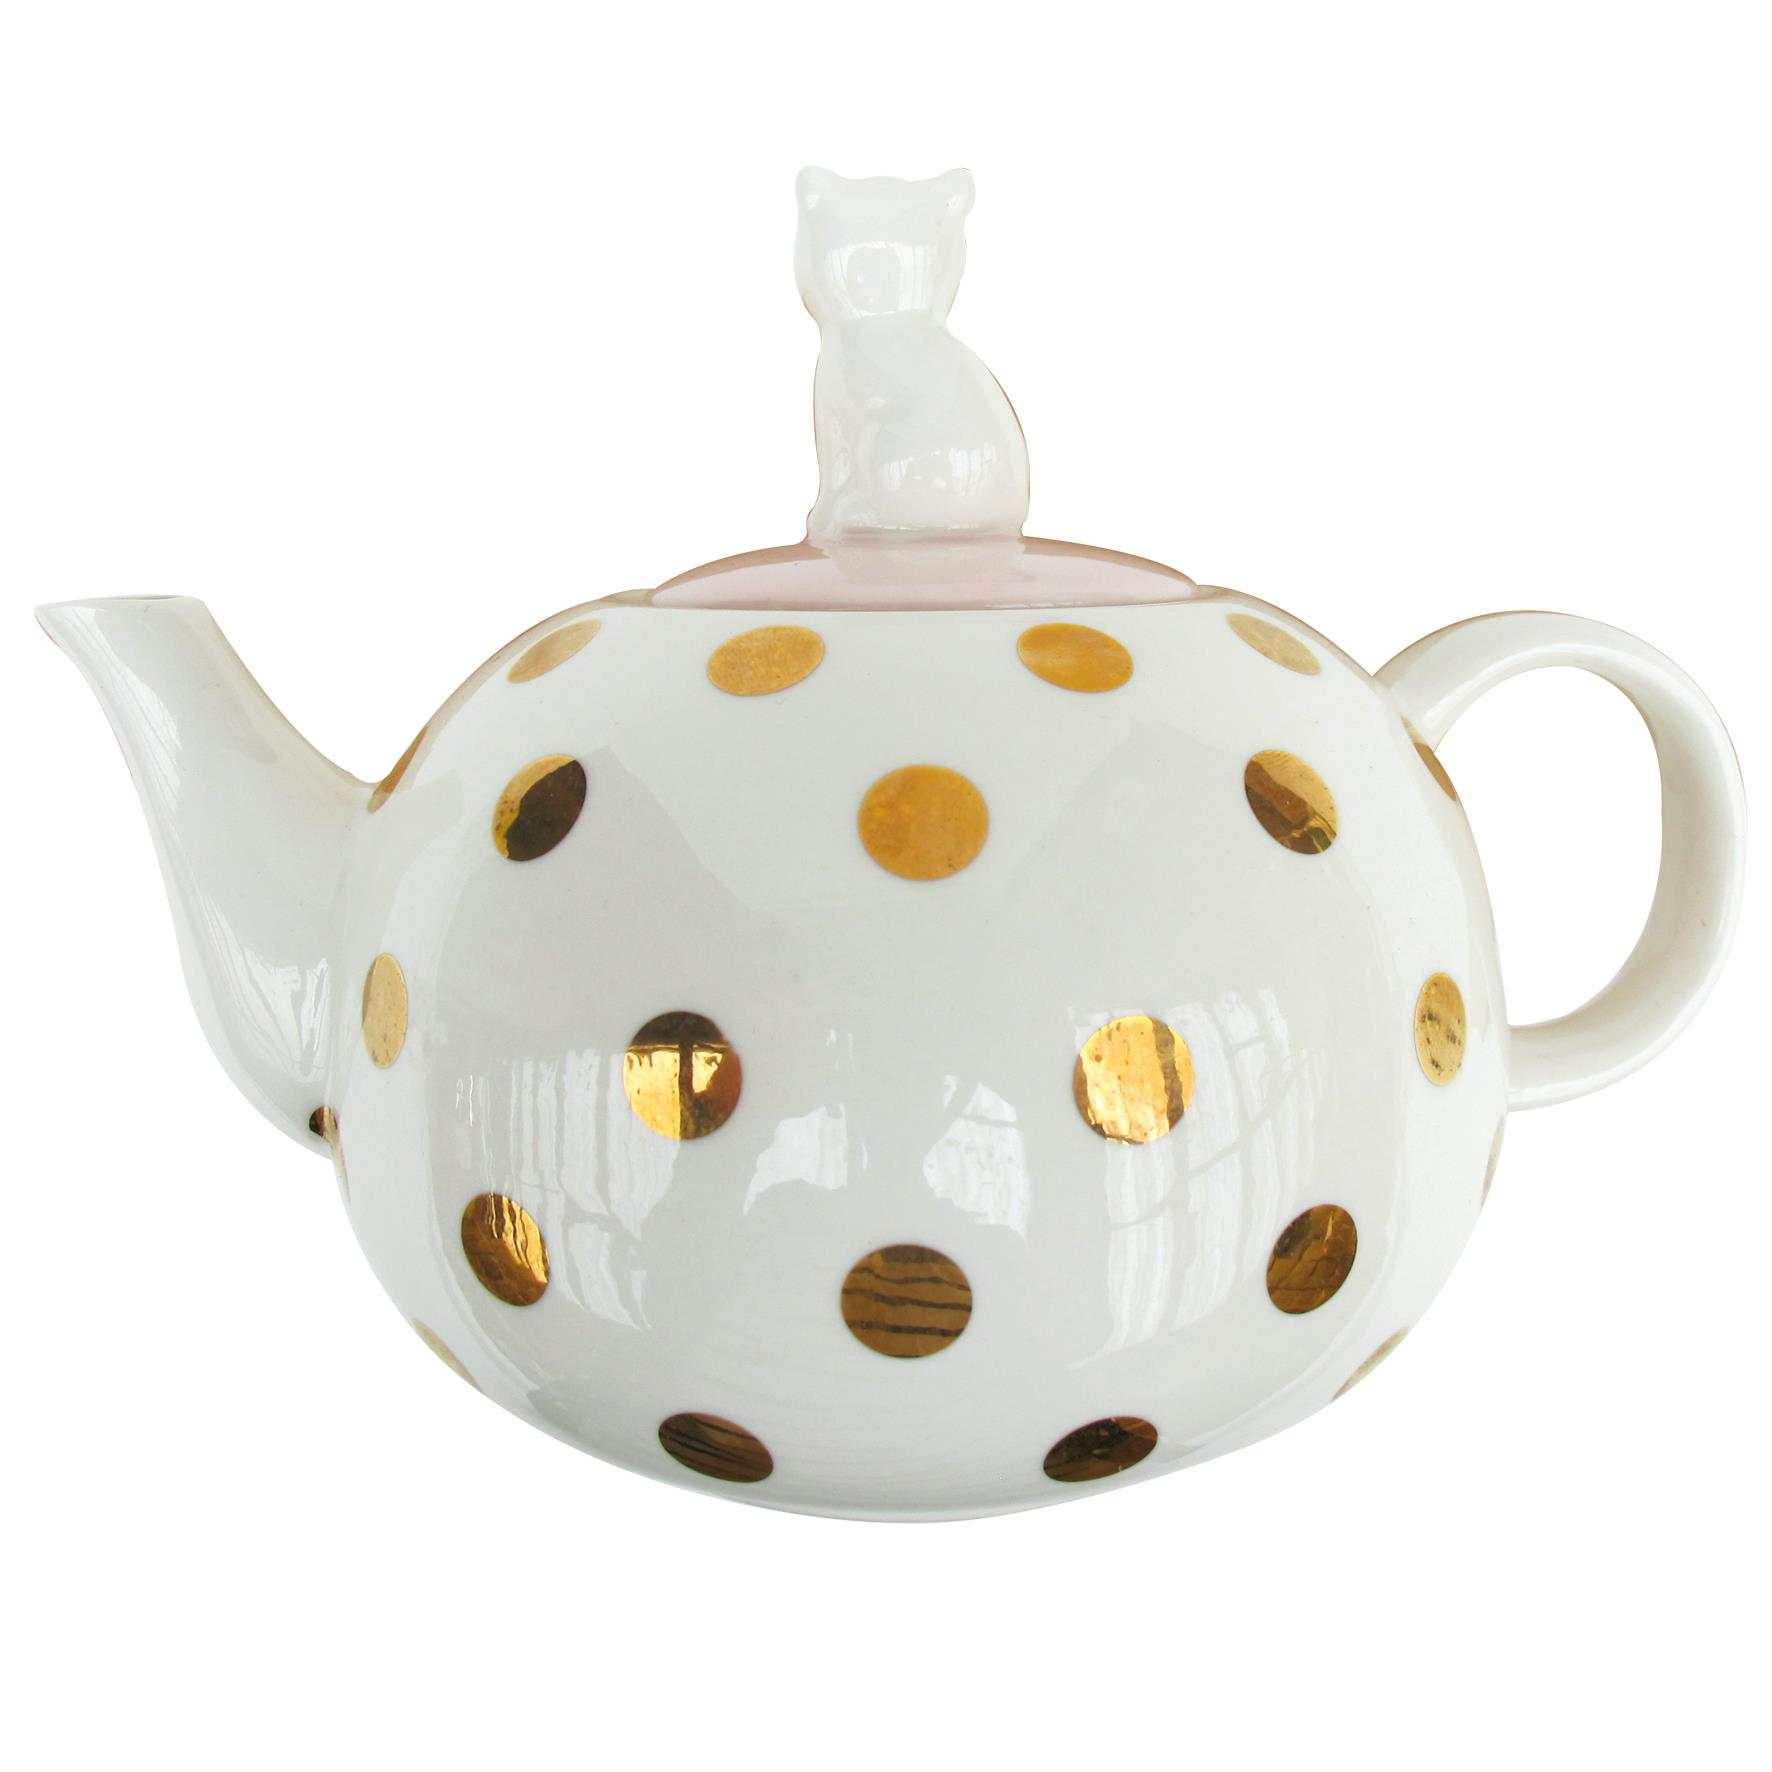 Disaster retro kanvička s mačičkou Spotty Tea Pot